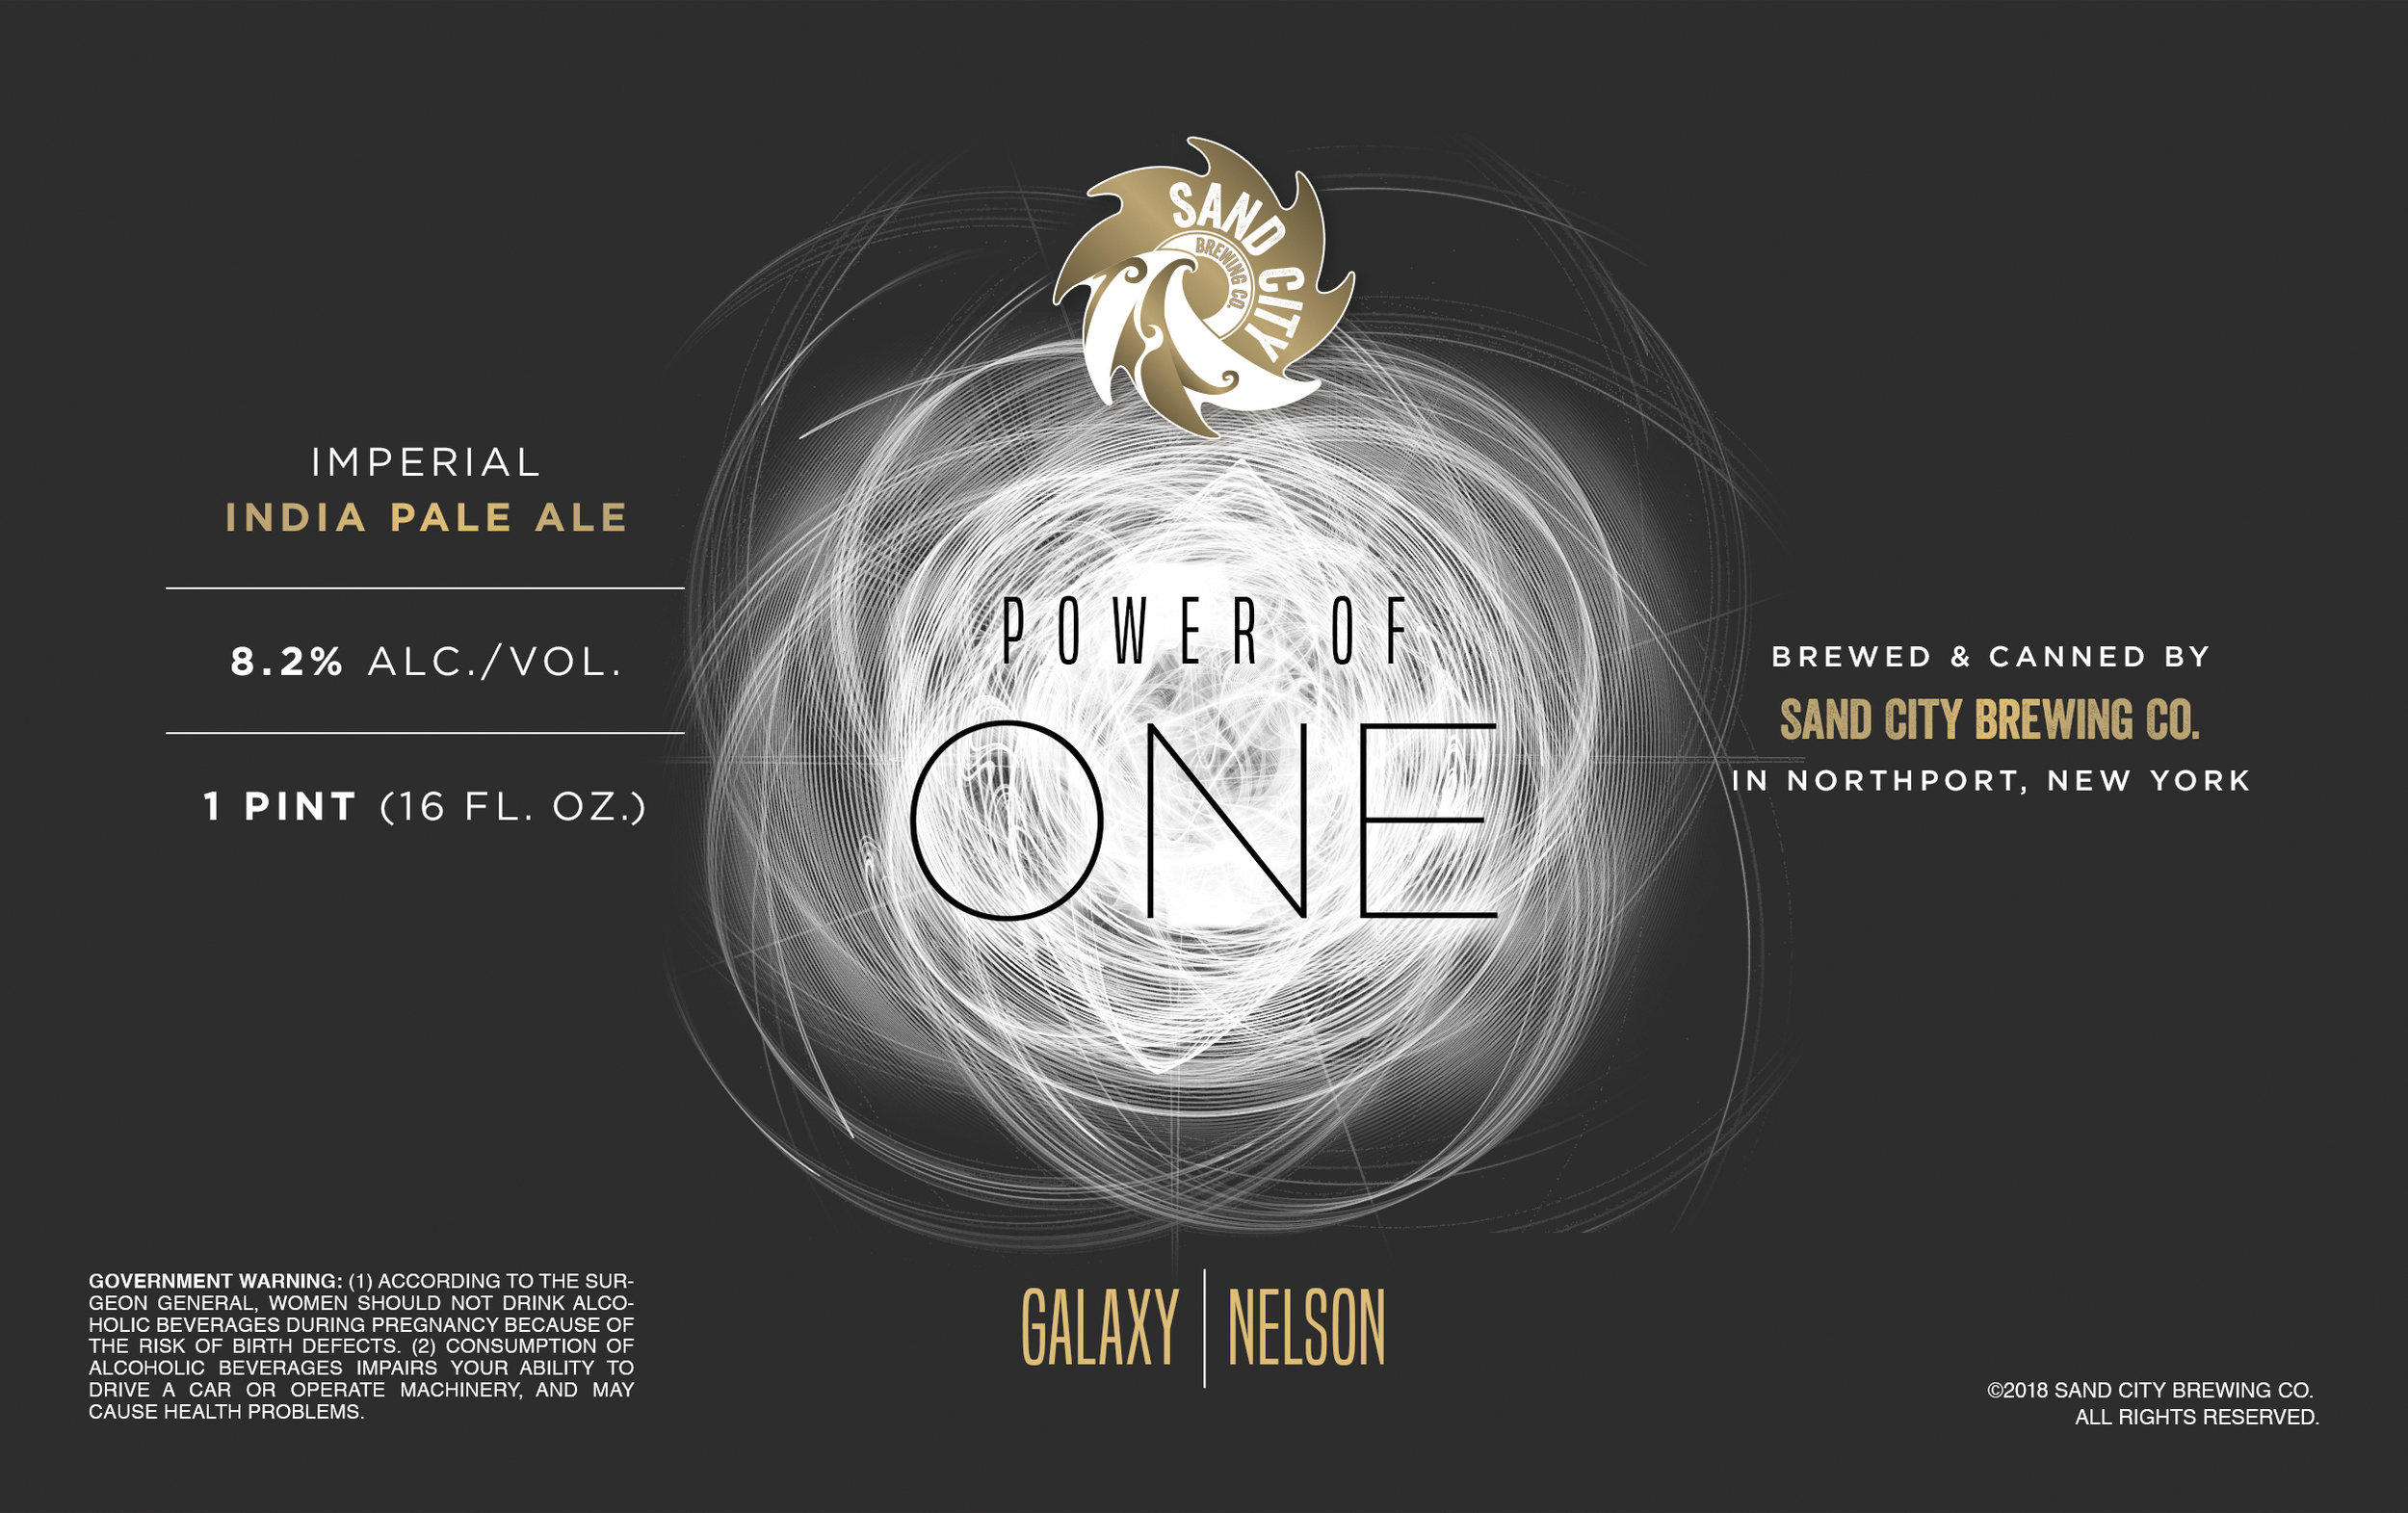 Power of One_16oz_label redesign - final flat cmyk 12-6-2017.JPG